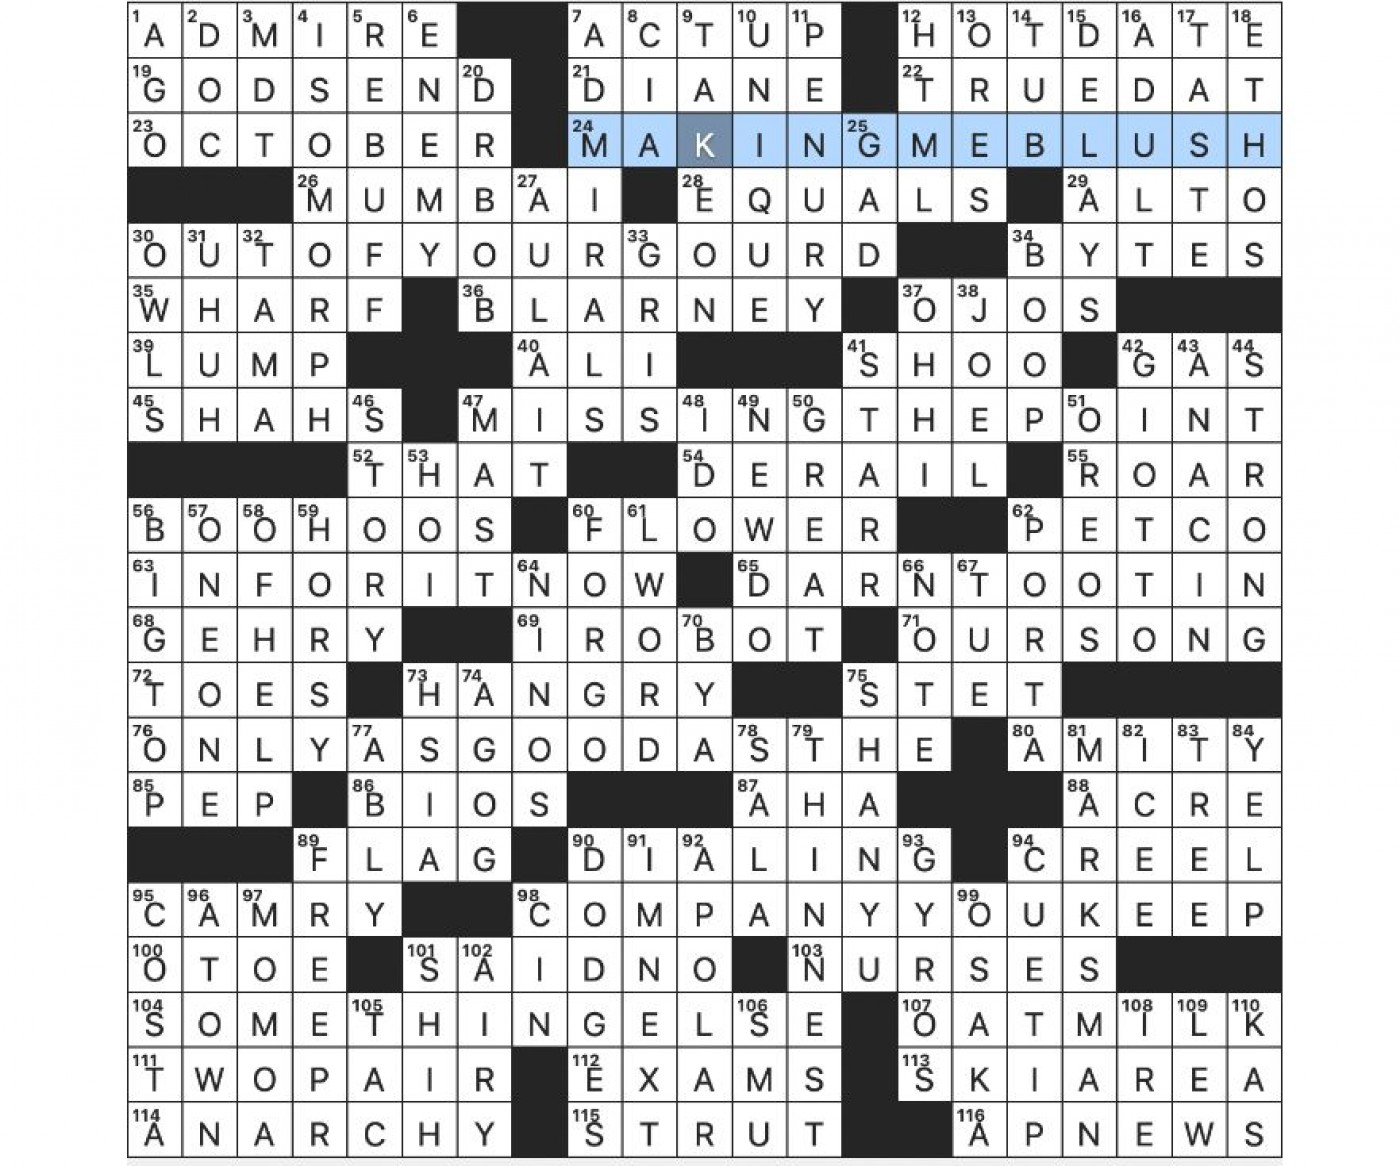 004 Archaicawful Rex Parker Doe Nytime Crossword Inspiration  The Nyt Puzzle 2020 Chore Galore Keep Change1400